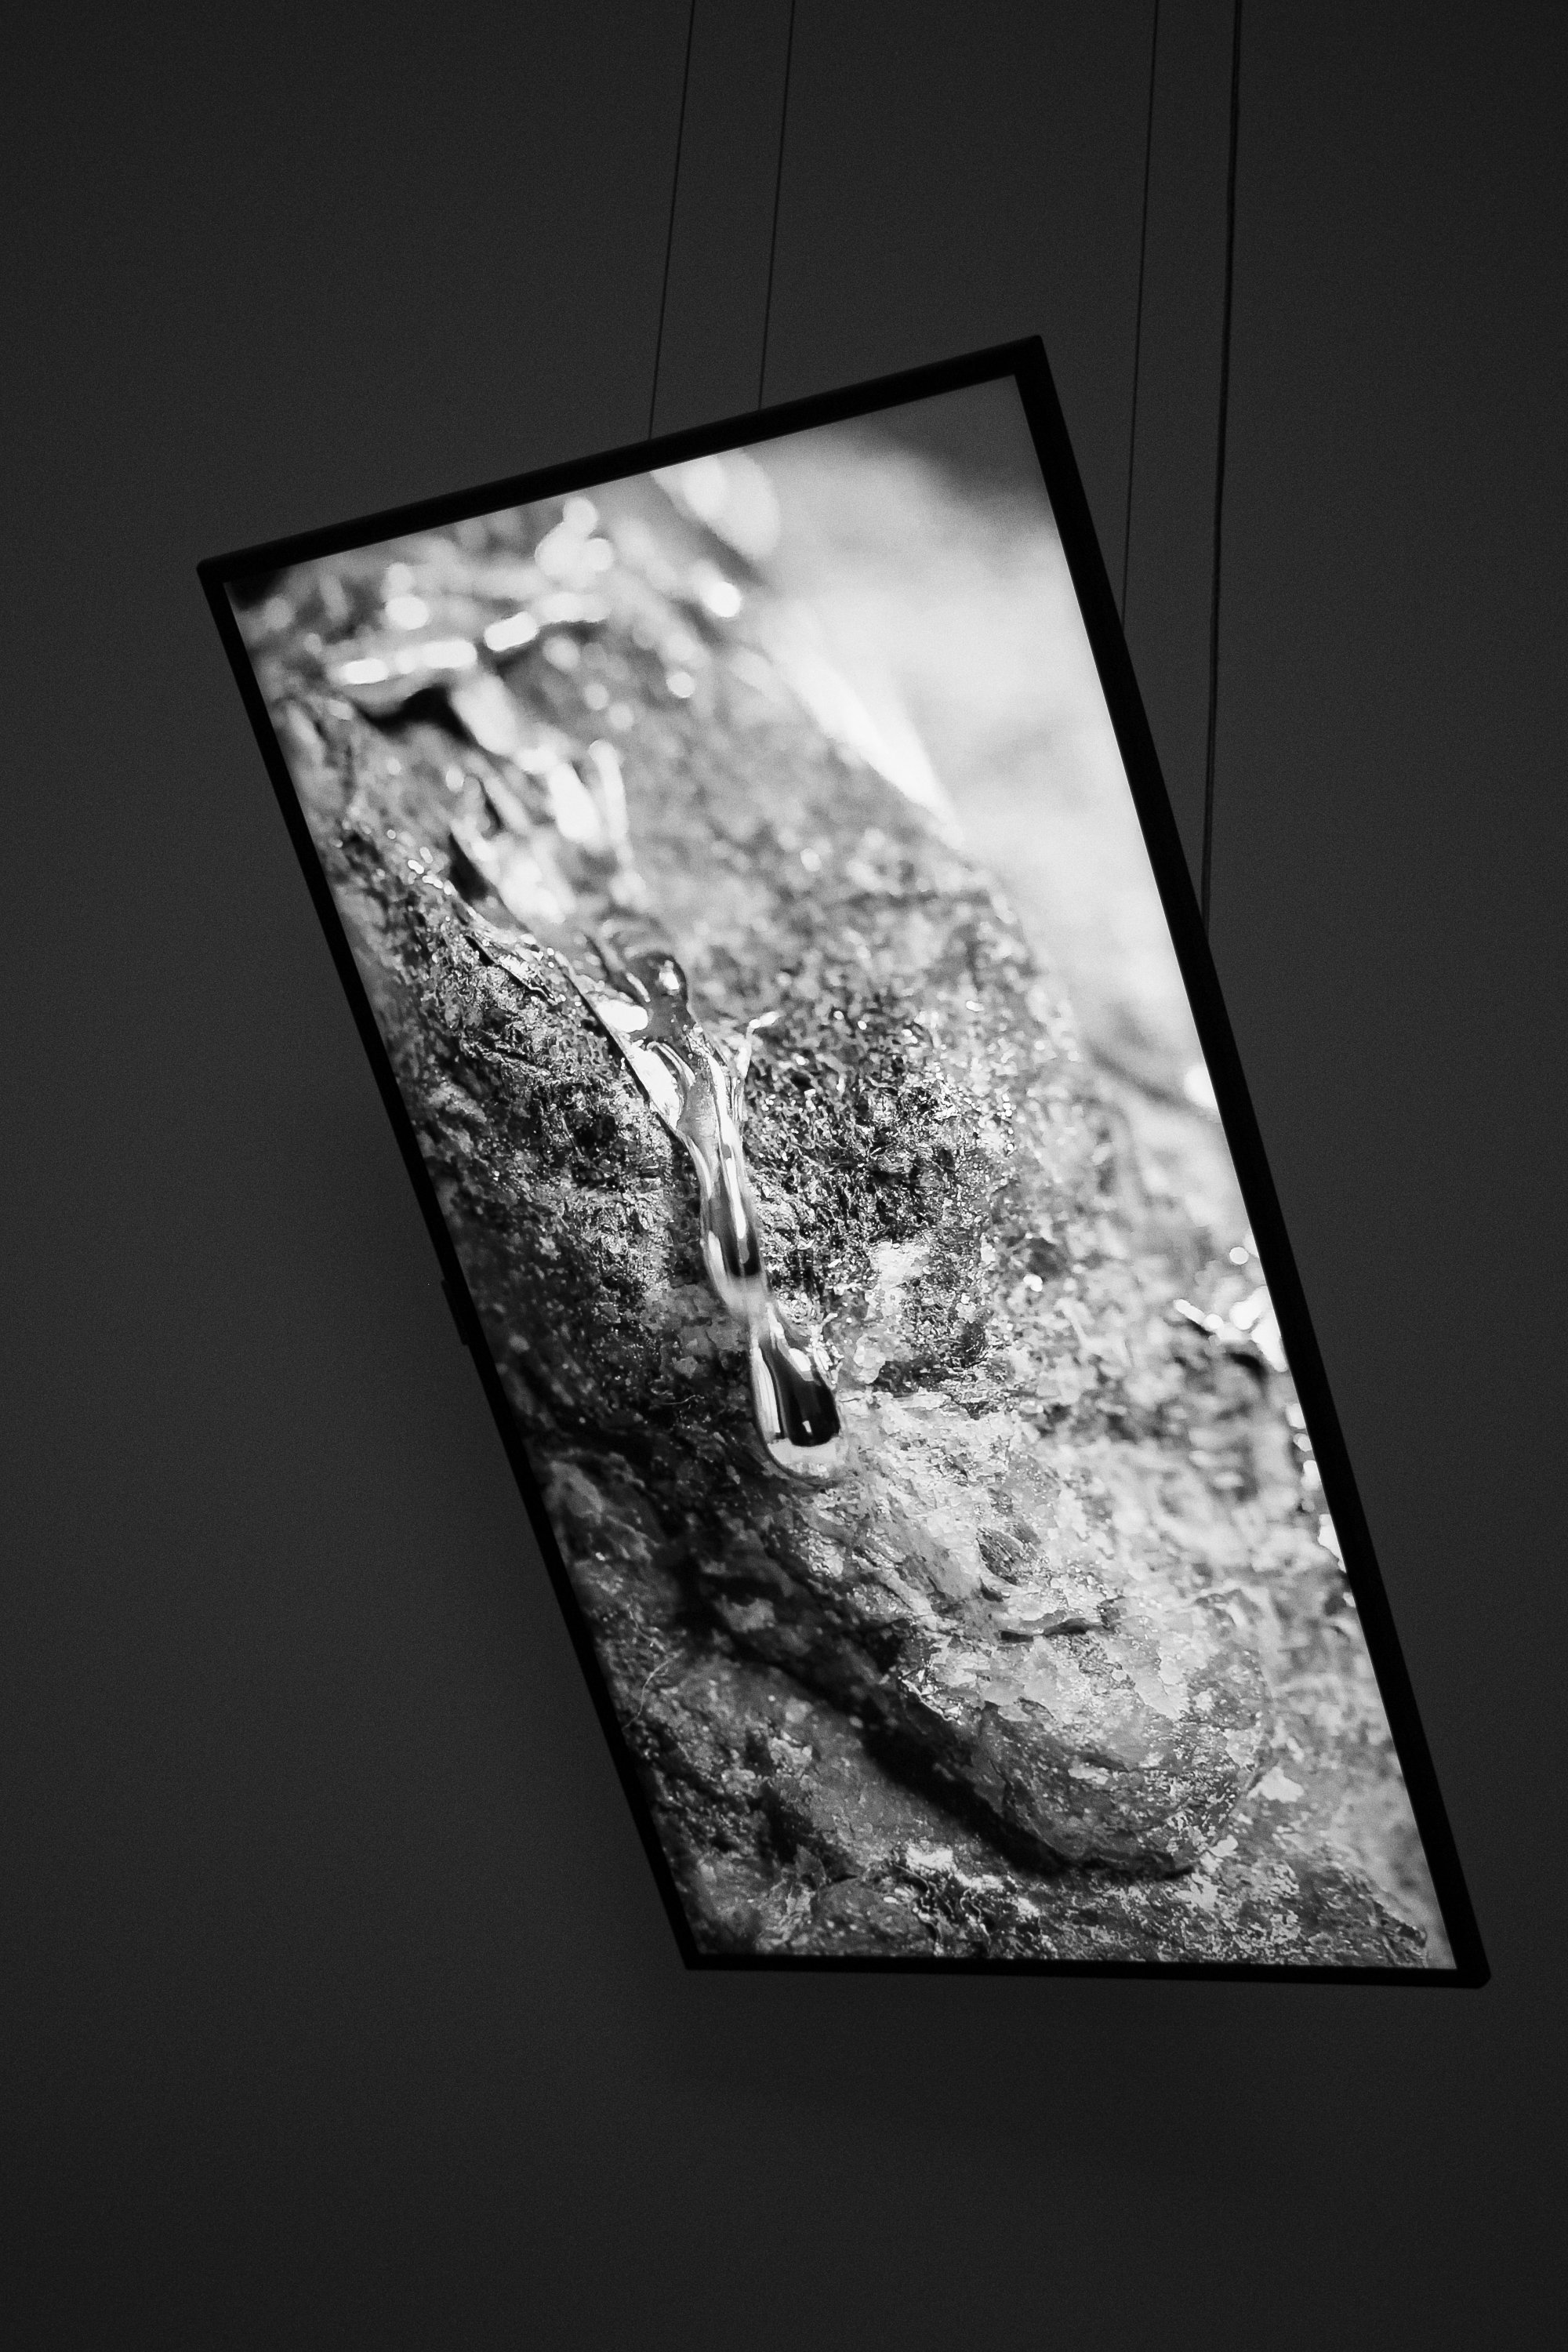 """Yelta Köm, """"Possibilistic Grounds,"""" 2021, video installation, LED screen. (Courtesy of Versus Art Project)"""